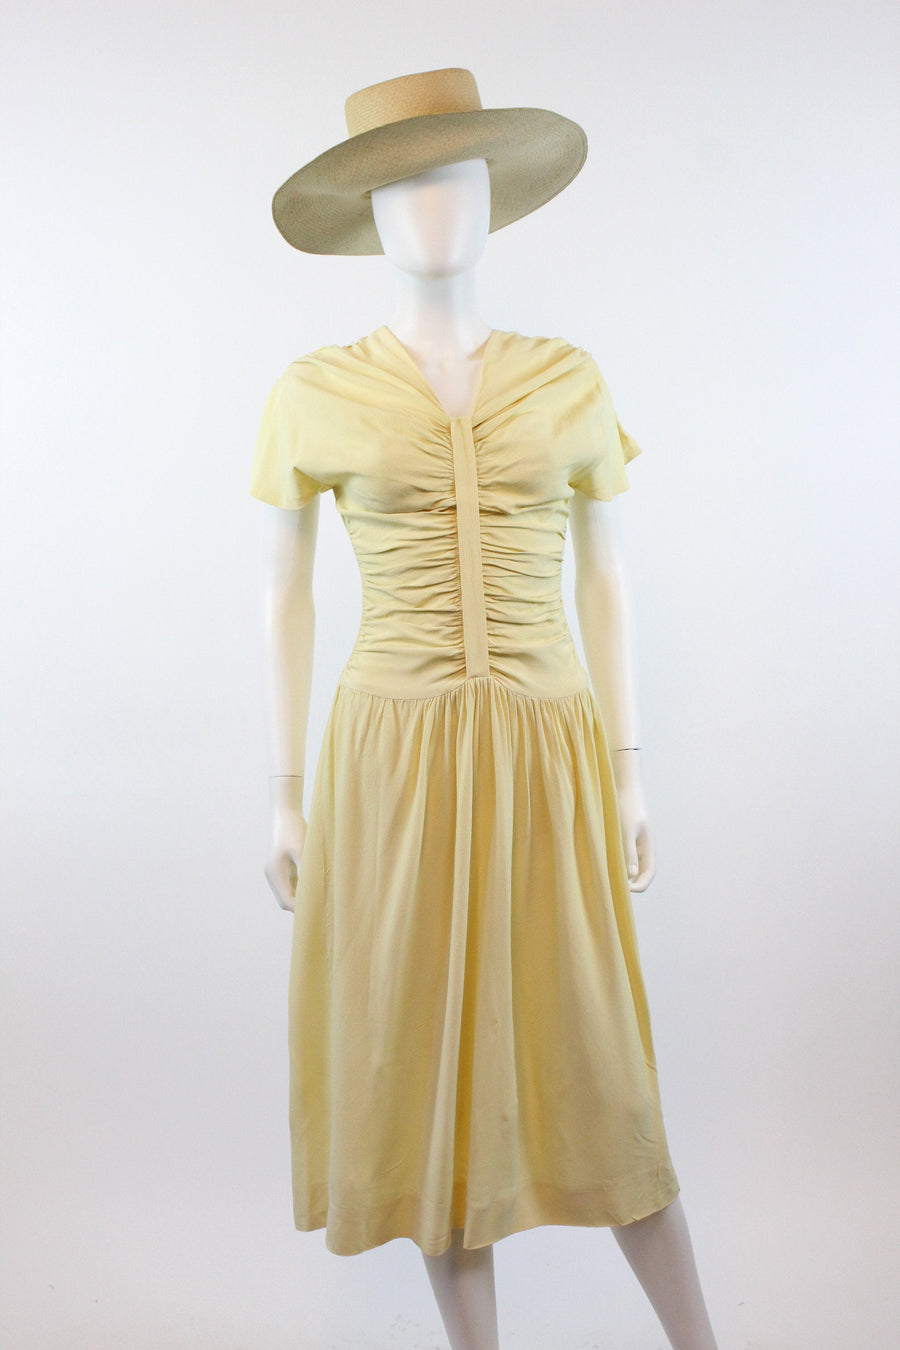 1940s Jourdelle of Hollywood cornsilk rayon dress small | vintage dress | new in